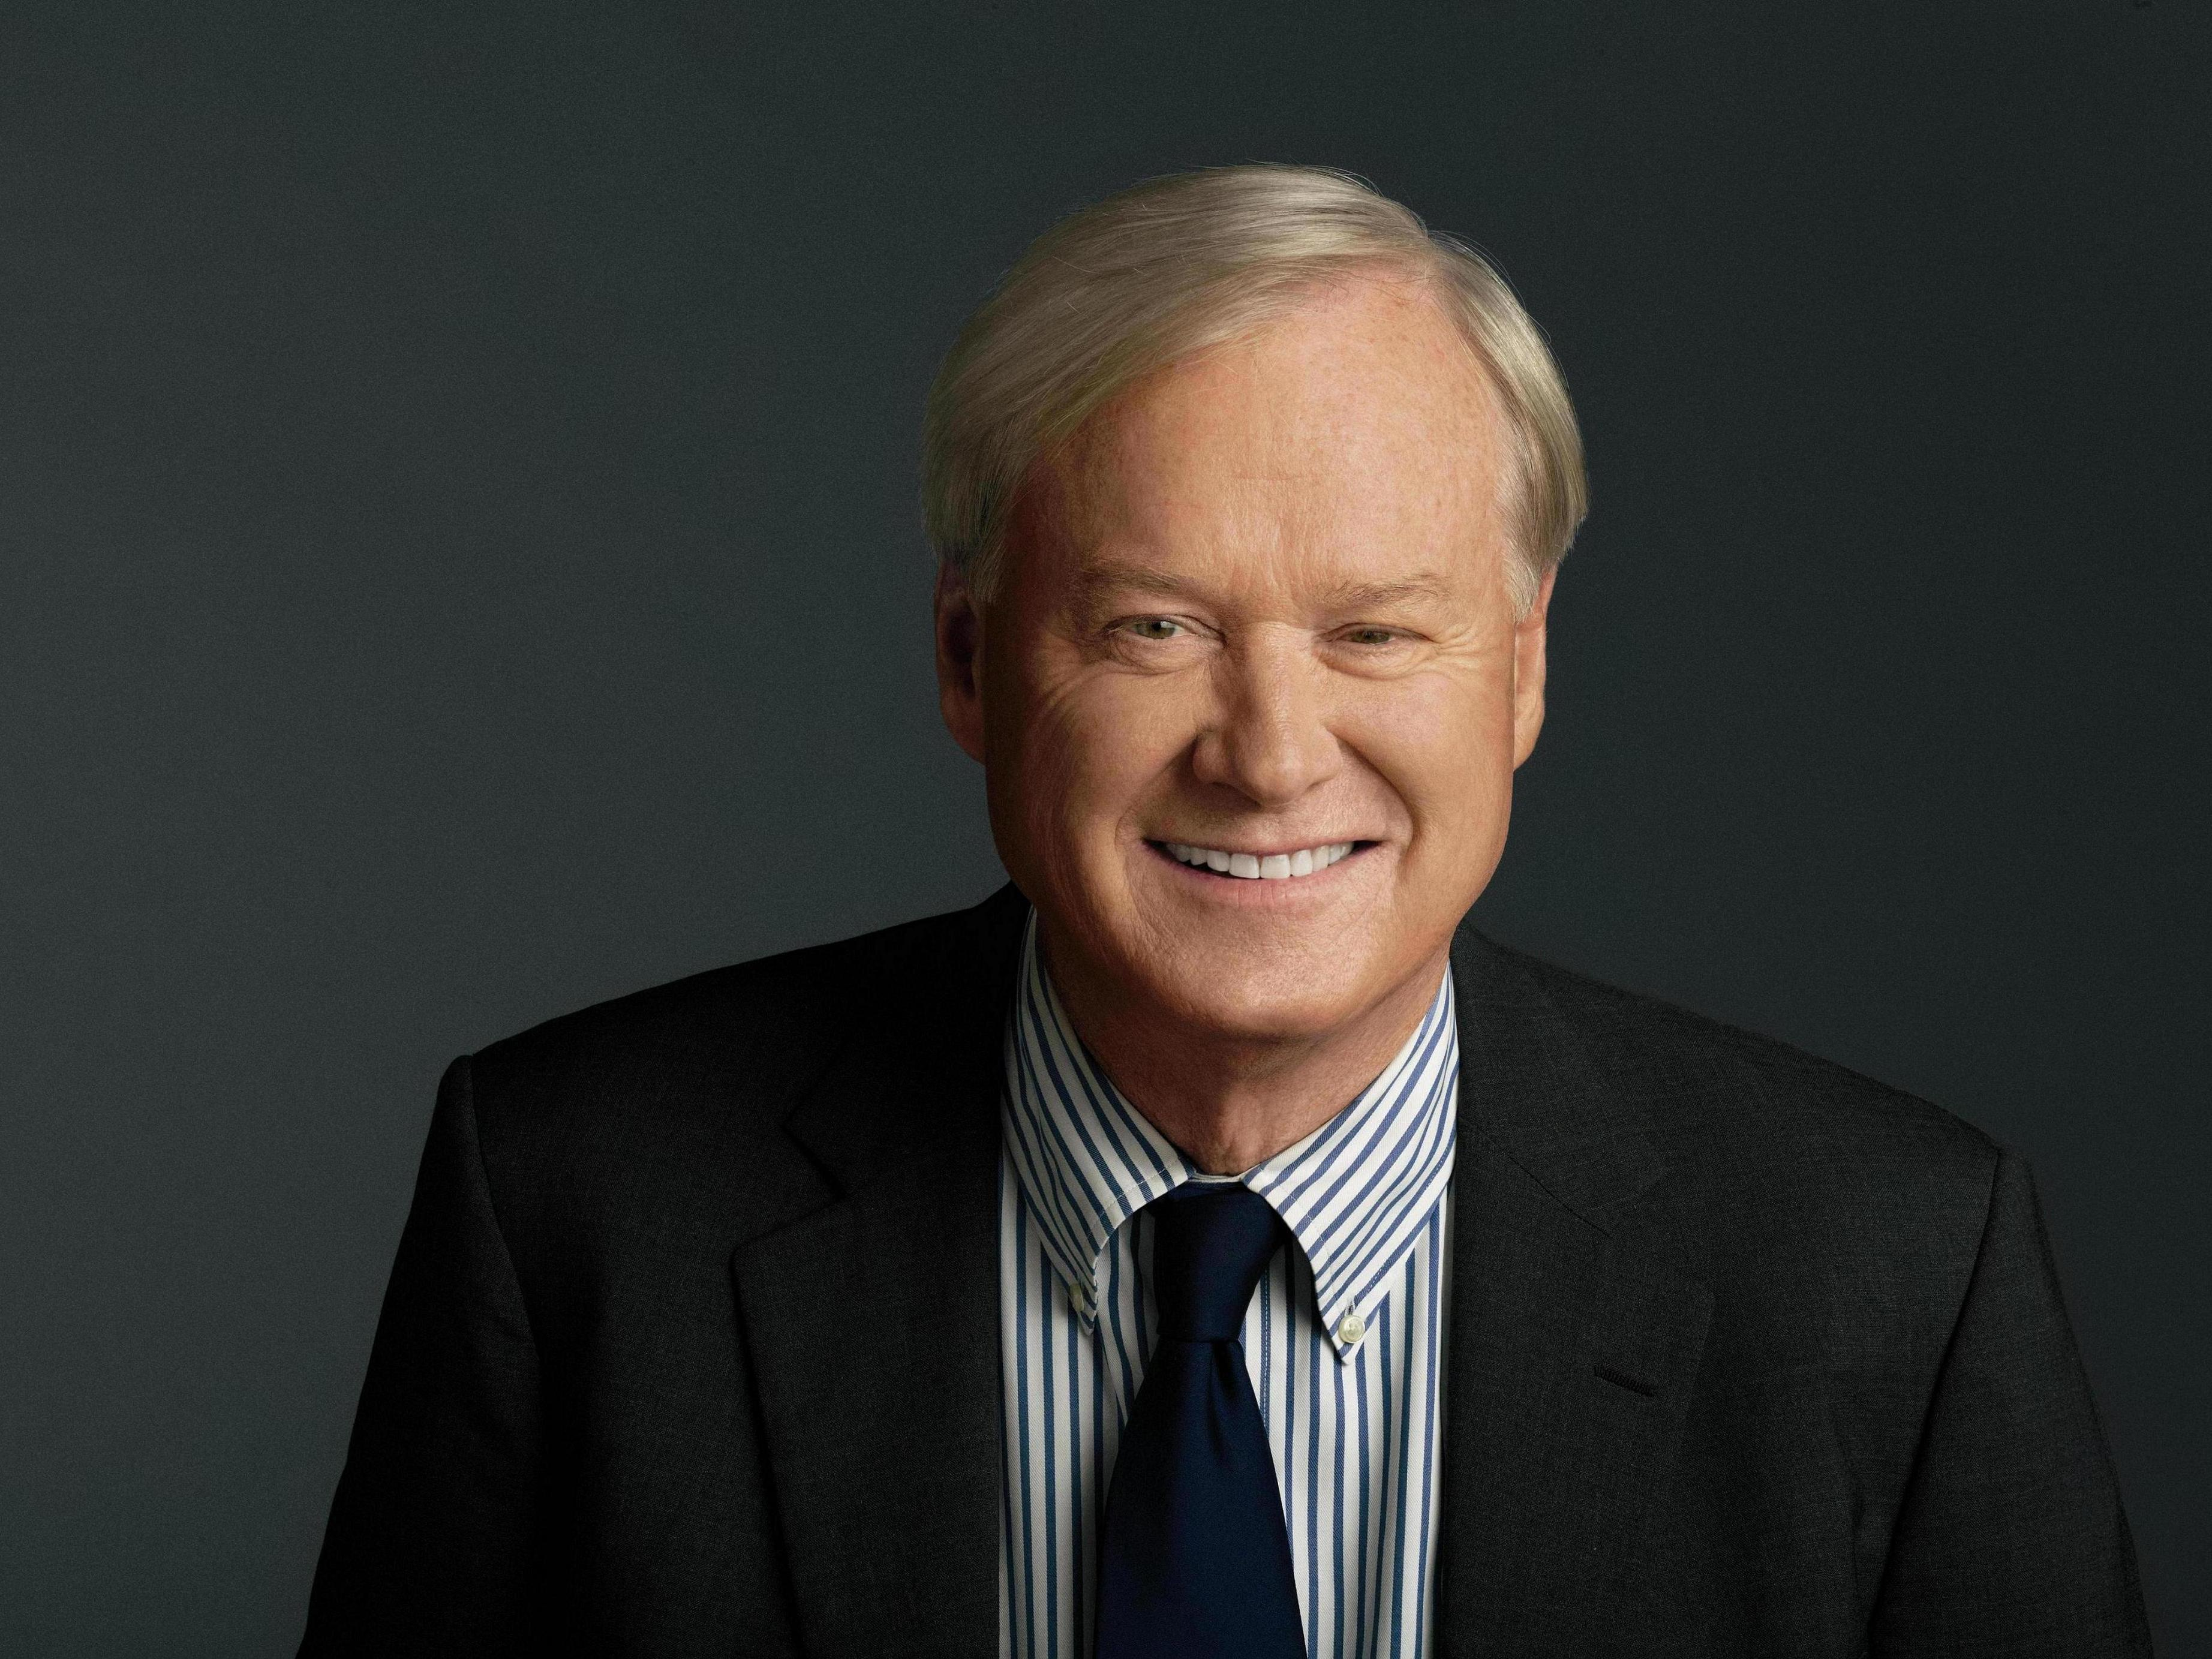 Chris Matthews Looks Back On A Time 'When Politics Worked'